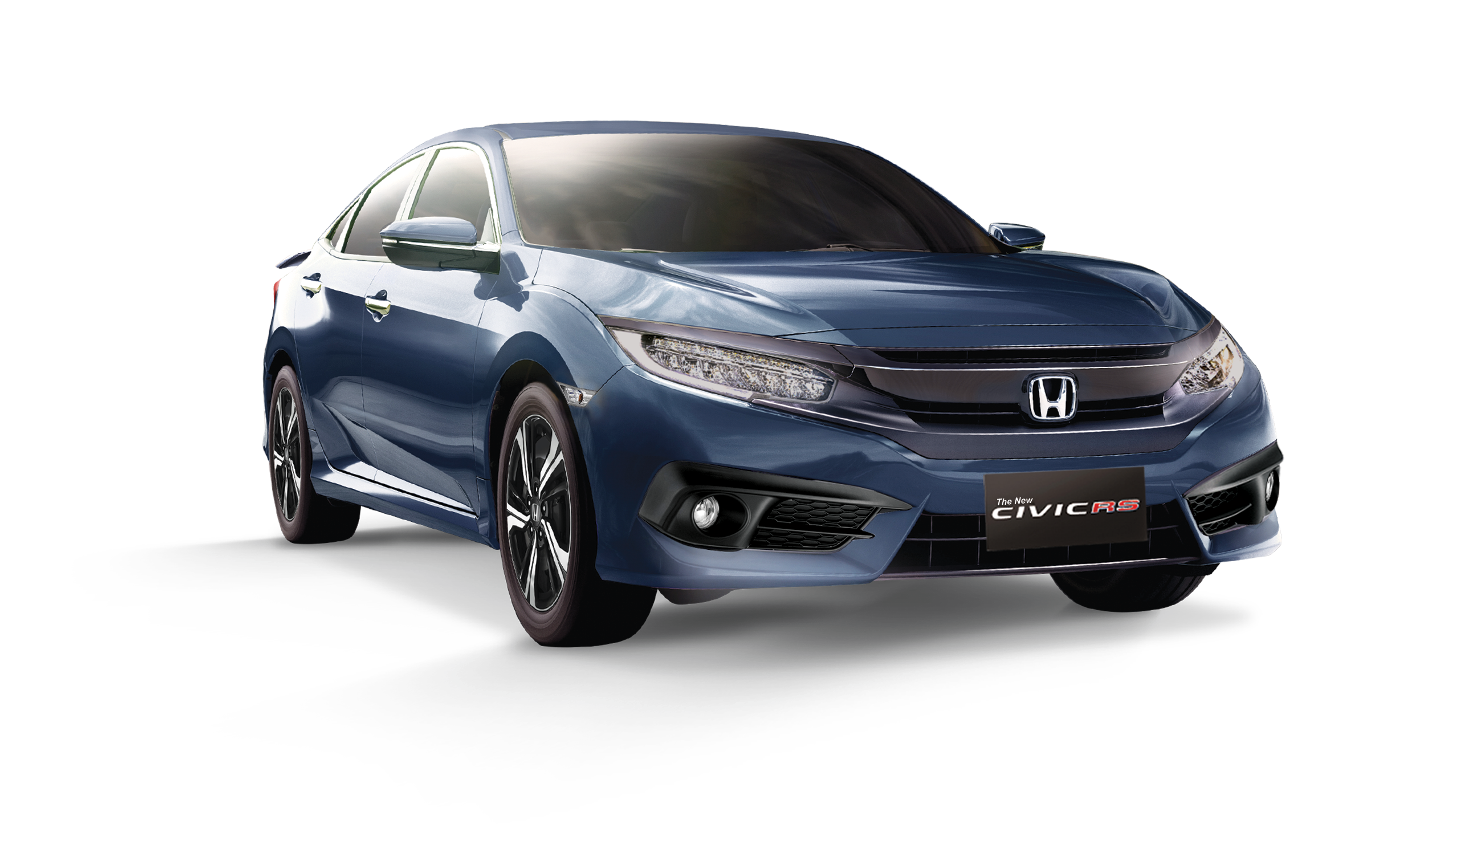 Honda drawing customized. The official website of